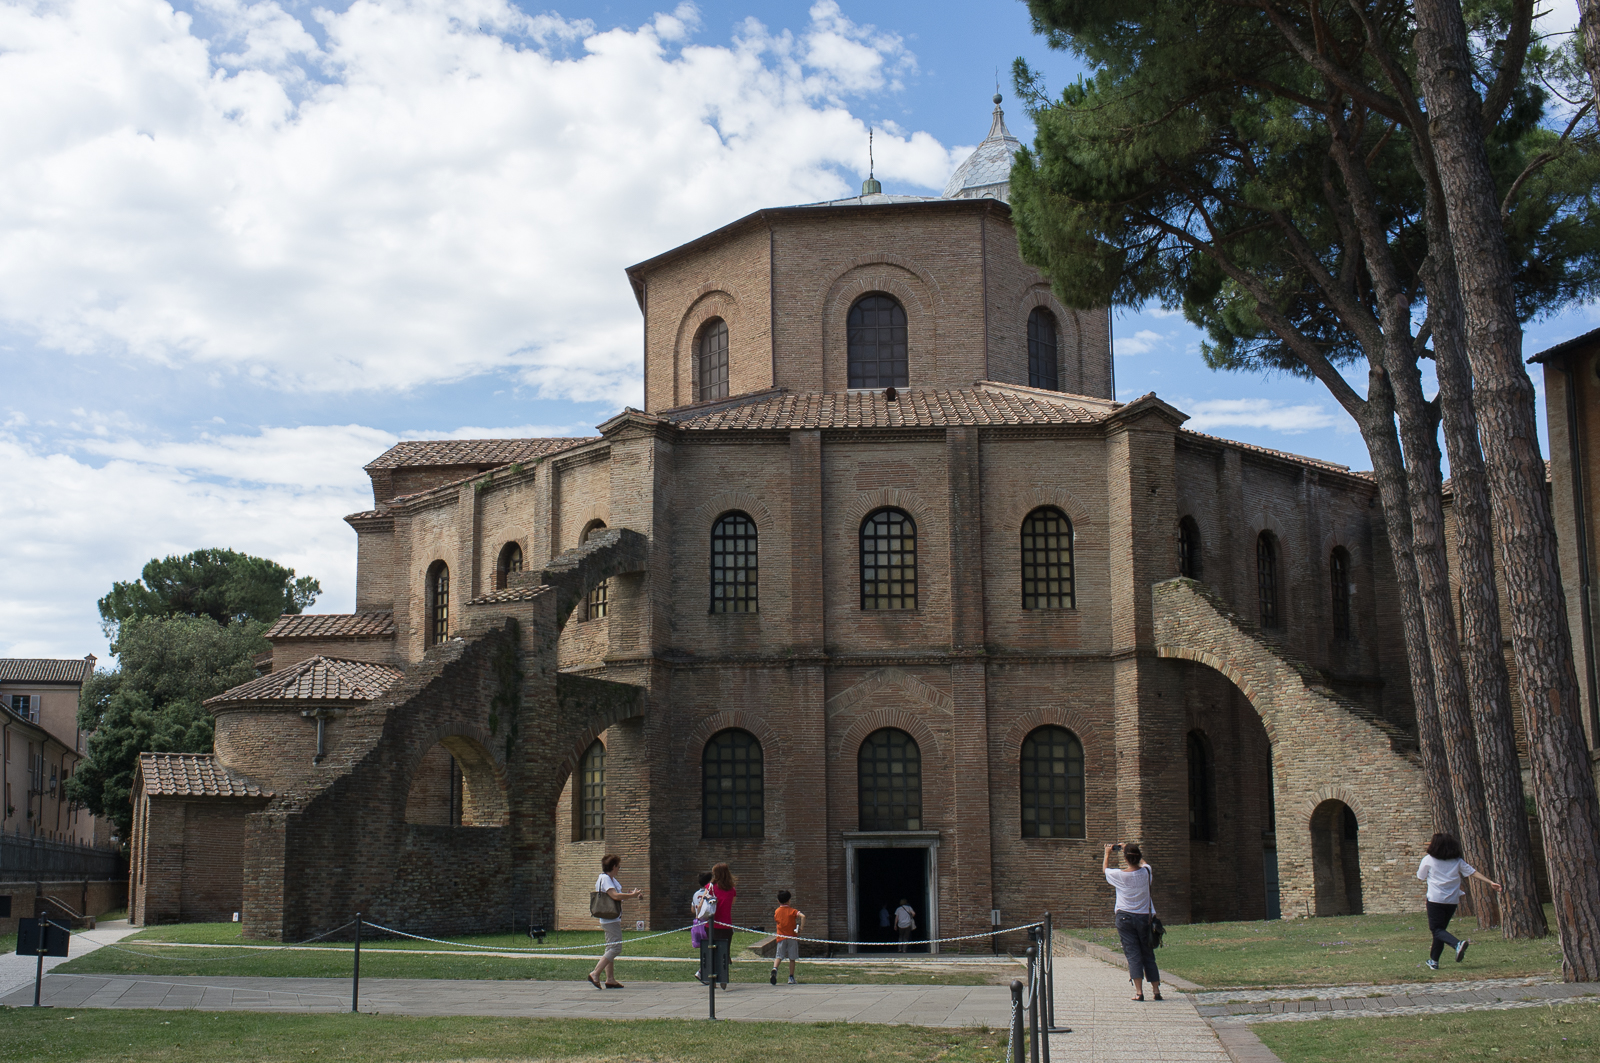 Basilica of San Vitale, courtyard view